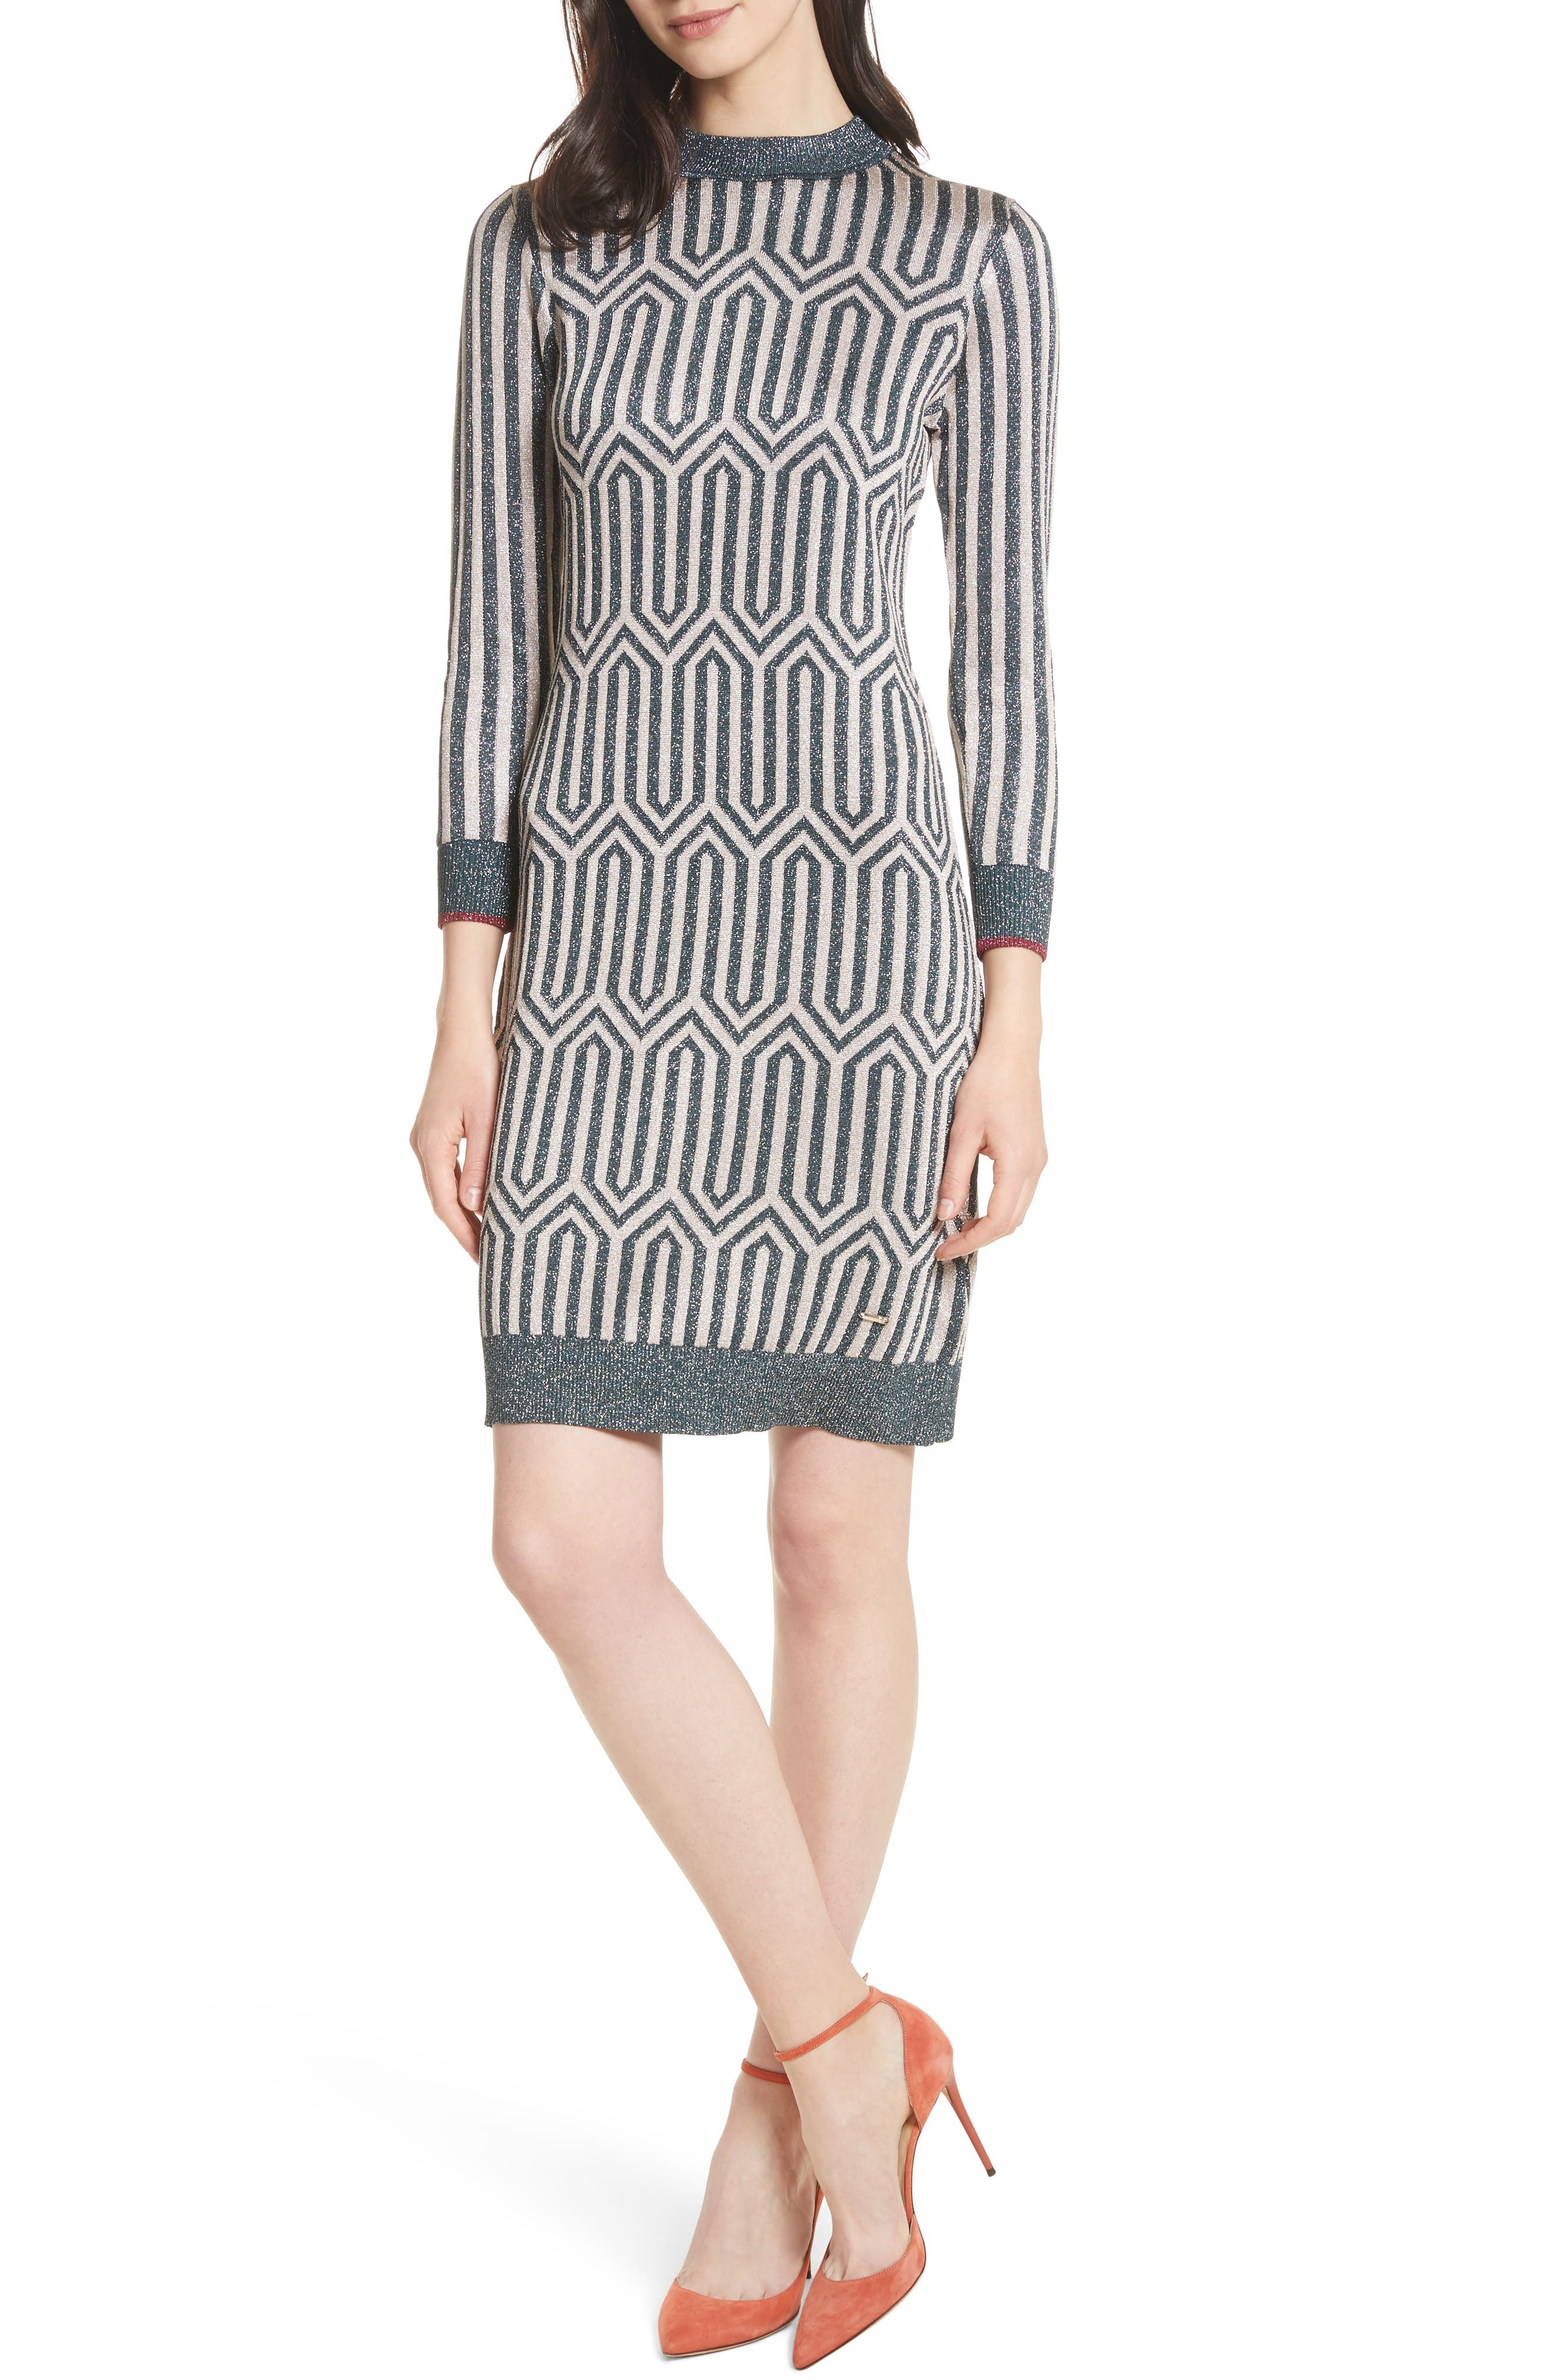 Alternate Image 1 Selected - Ted Baker London Metallic Knit Dress